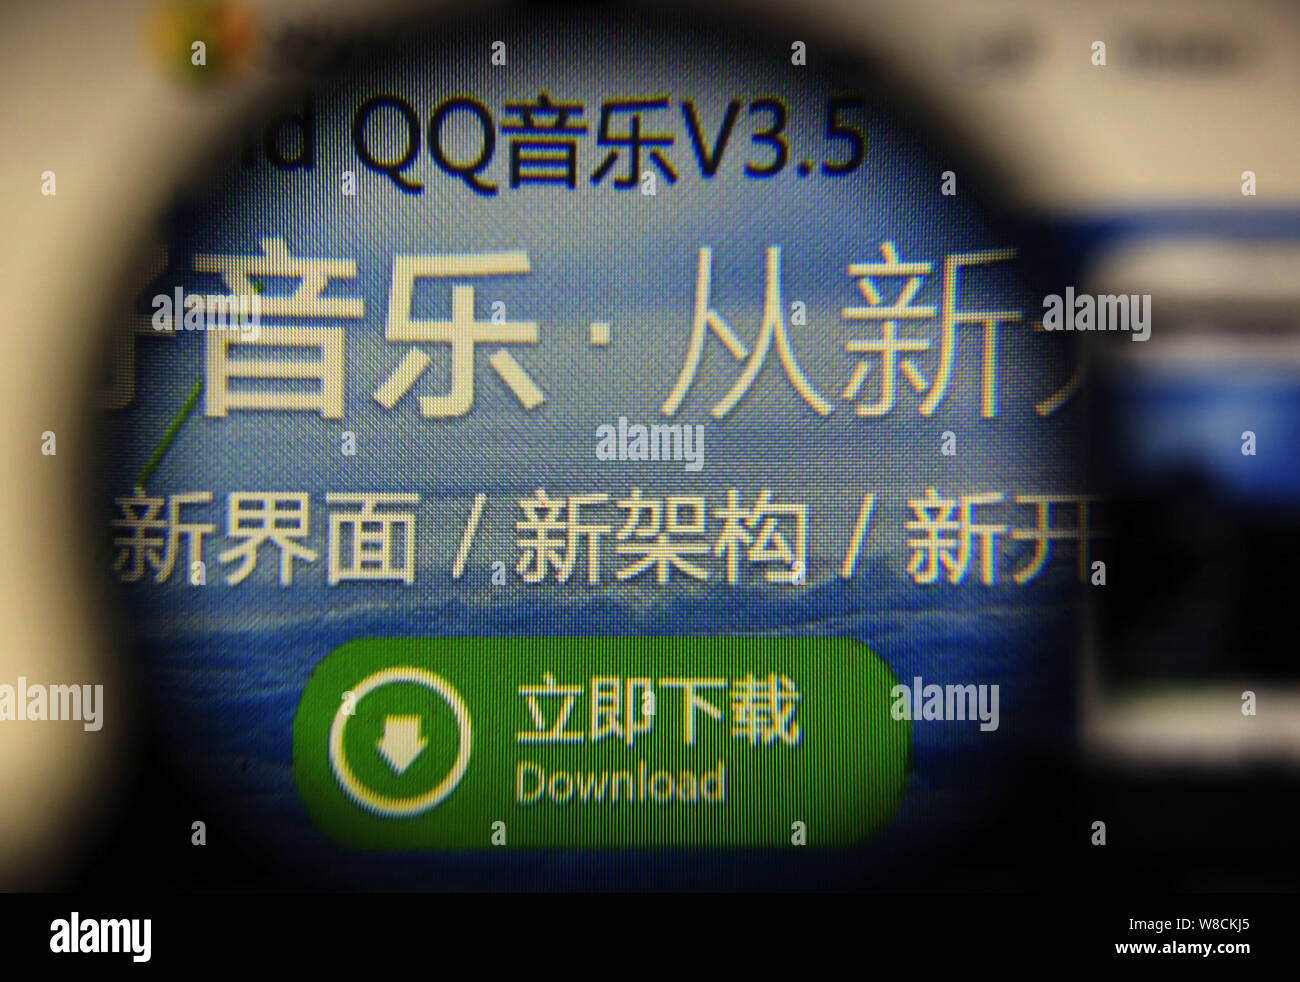 Qq Music High Resolution Stock Photography And Images Alamy